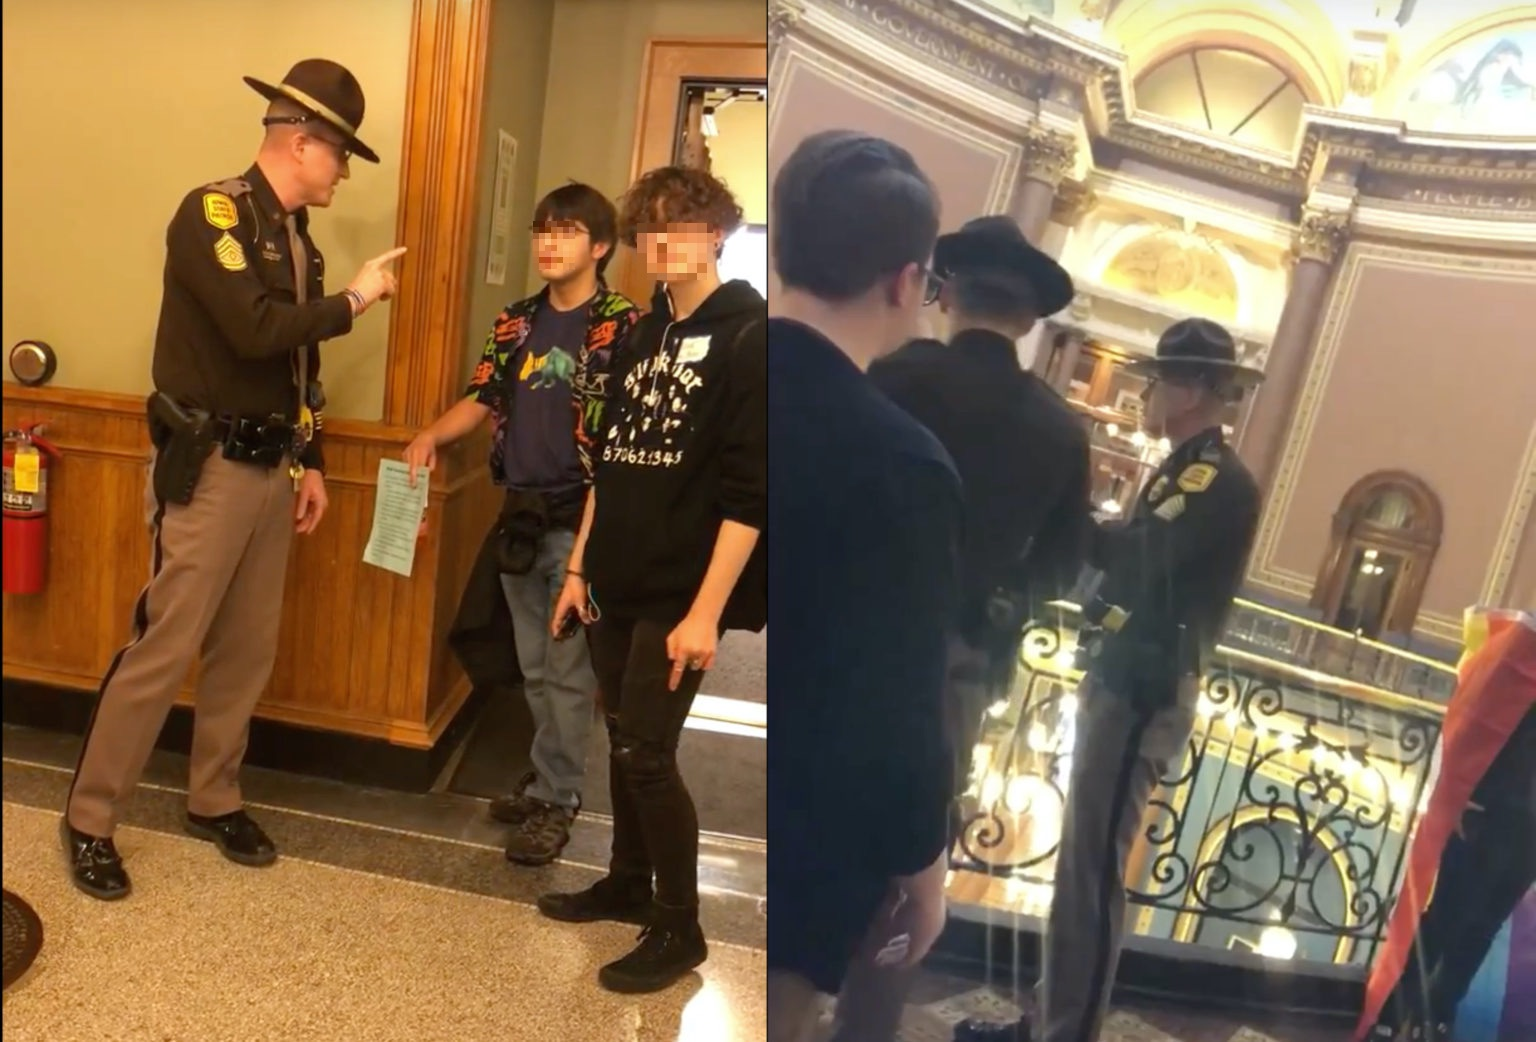 "State troopers thronged the Iowa Capitol Hill building and demanded the trans teens leave the premises after using restrooms that align with their gender identity. The Iowa state trooper demanded the trans teen leave after they used the restroom, with one teen lashing back ""Why do you care?"" On the right, the students leave the building in tears. (Iowa Safe Schools)"